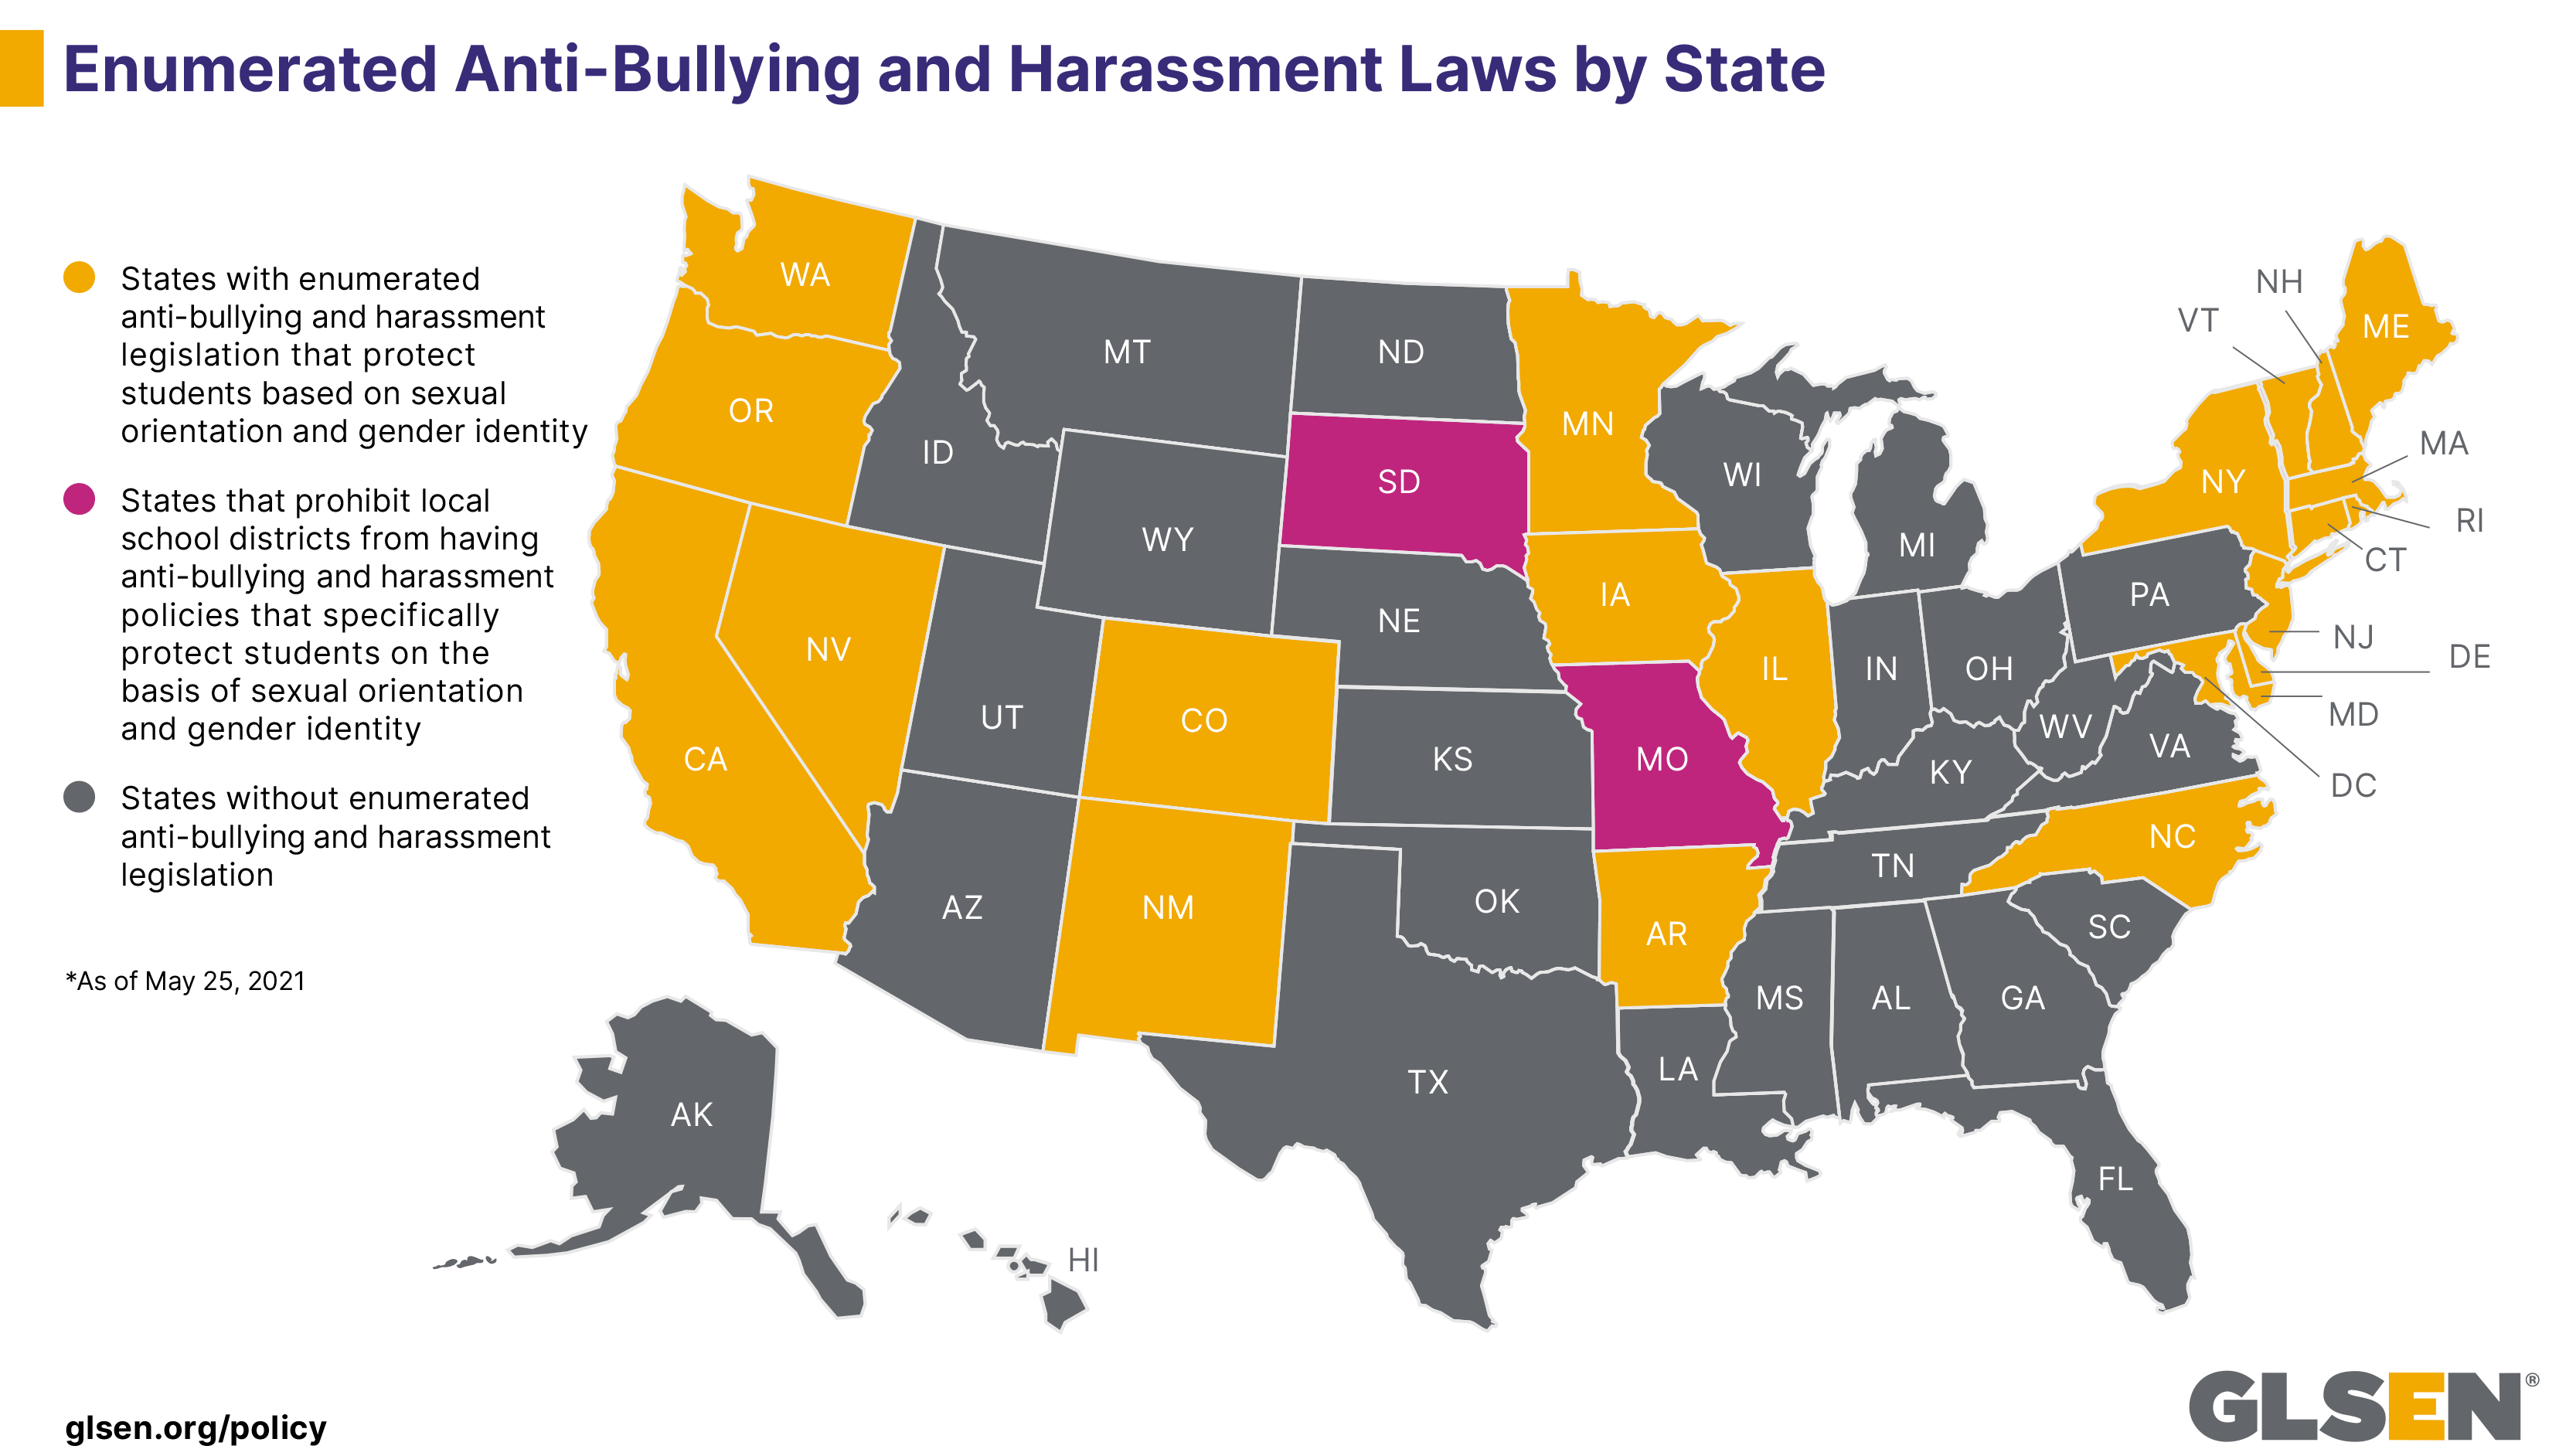 Enumerated Anti-Bullying Laws Protecting LGBTQ Students State by State